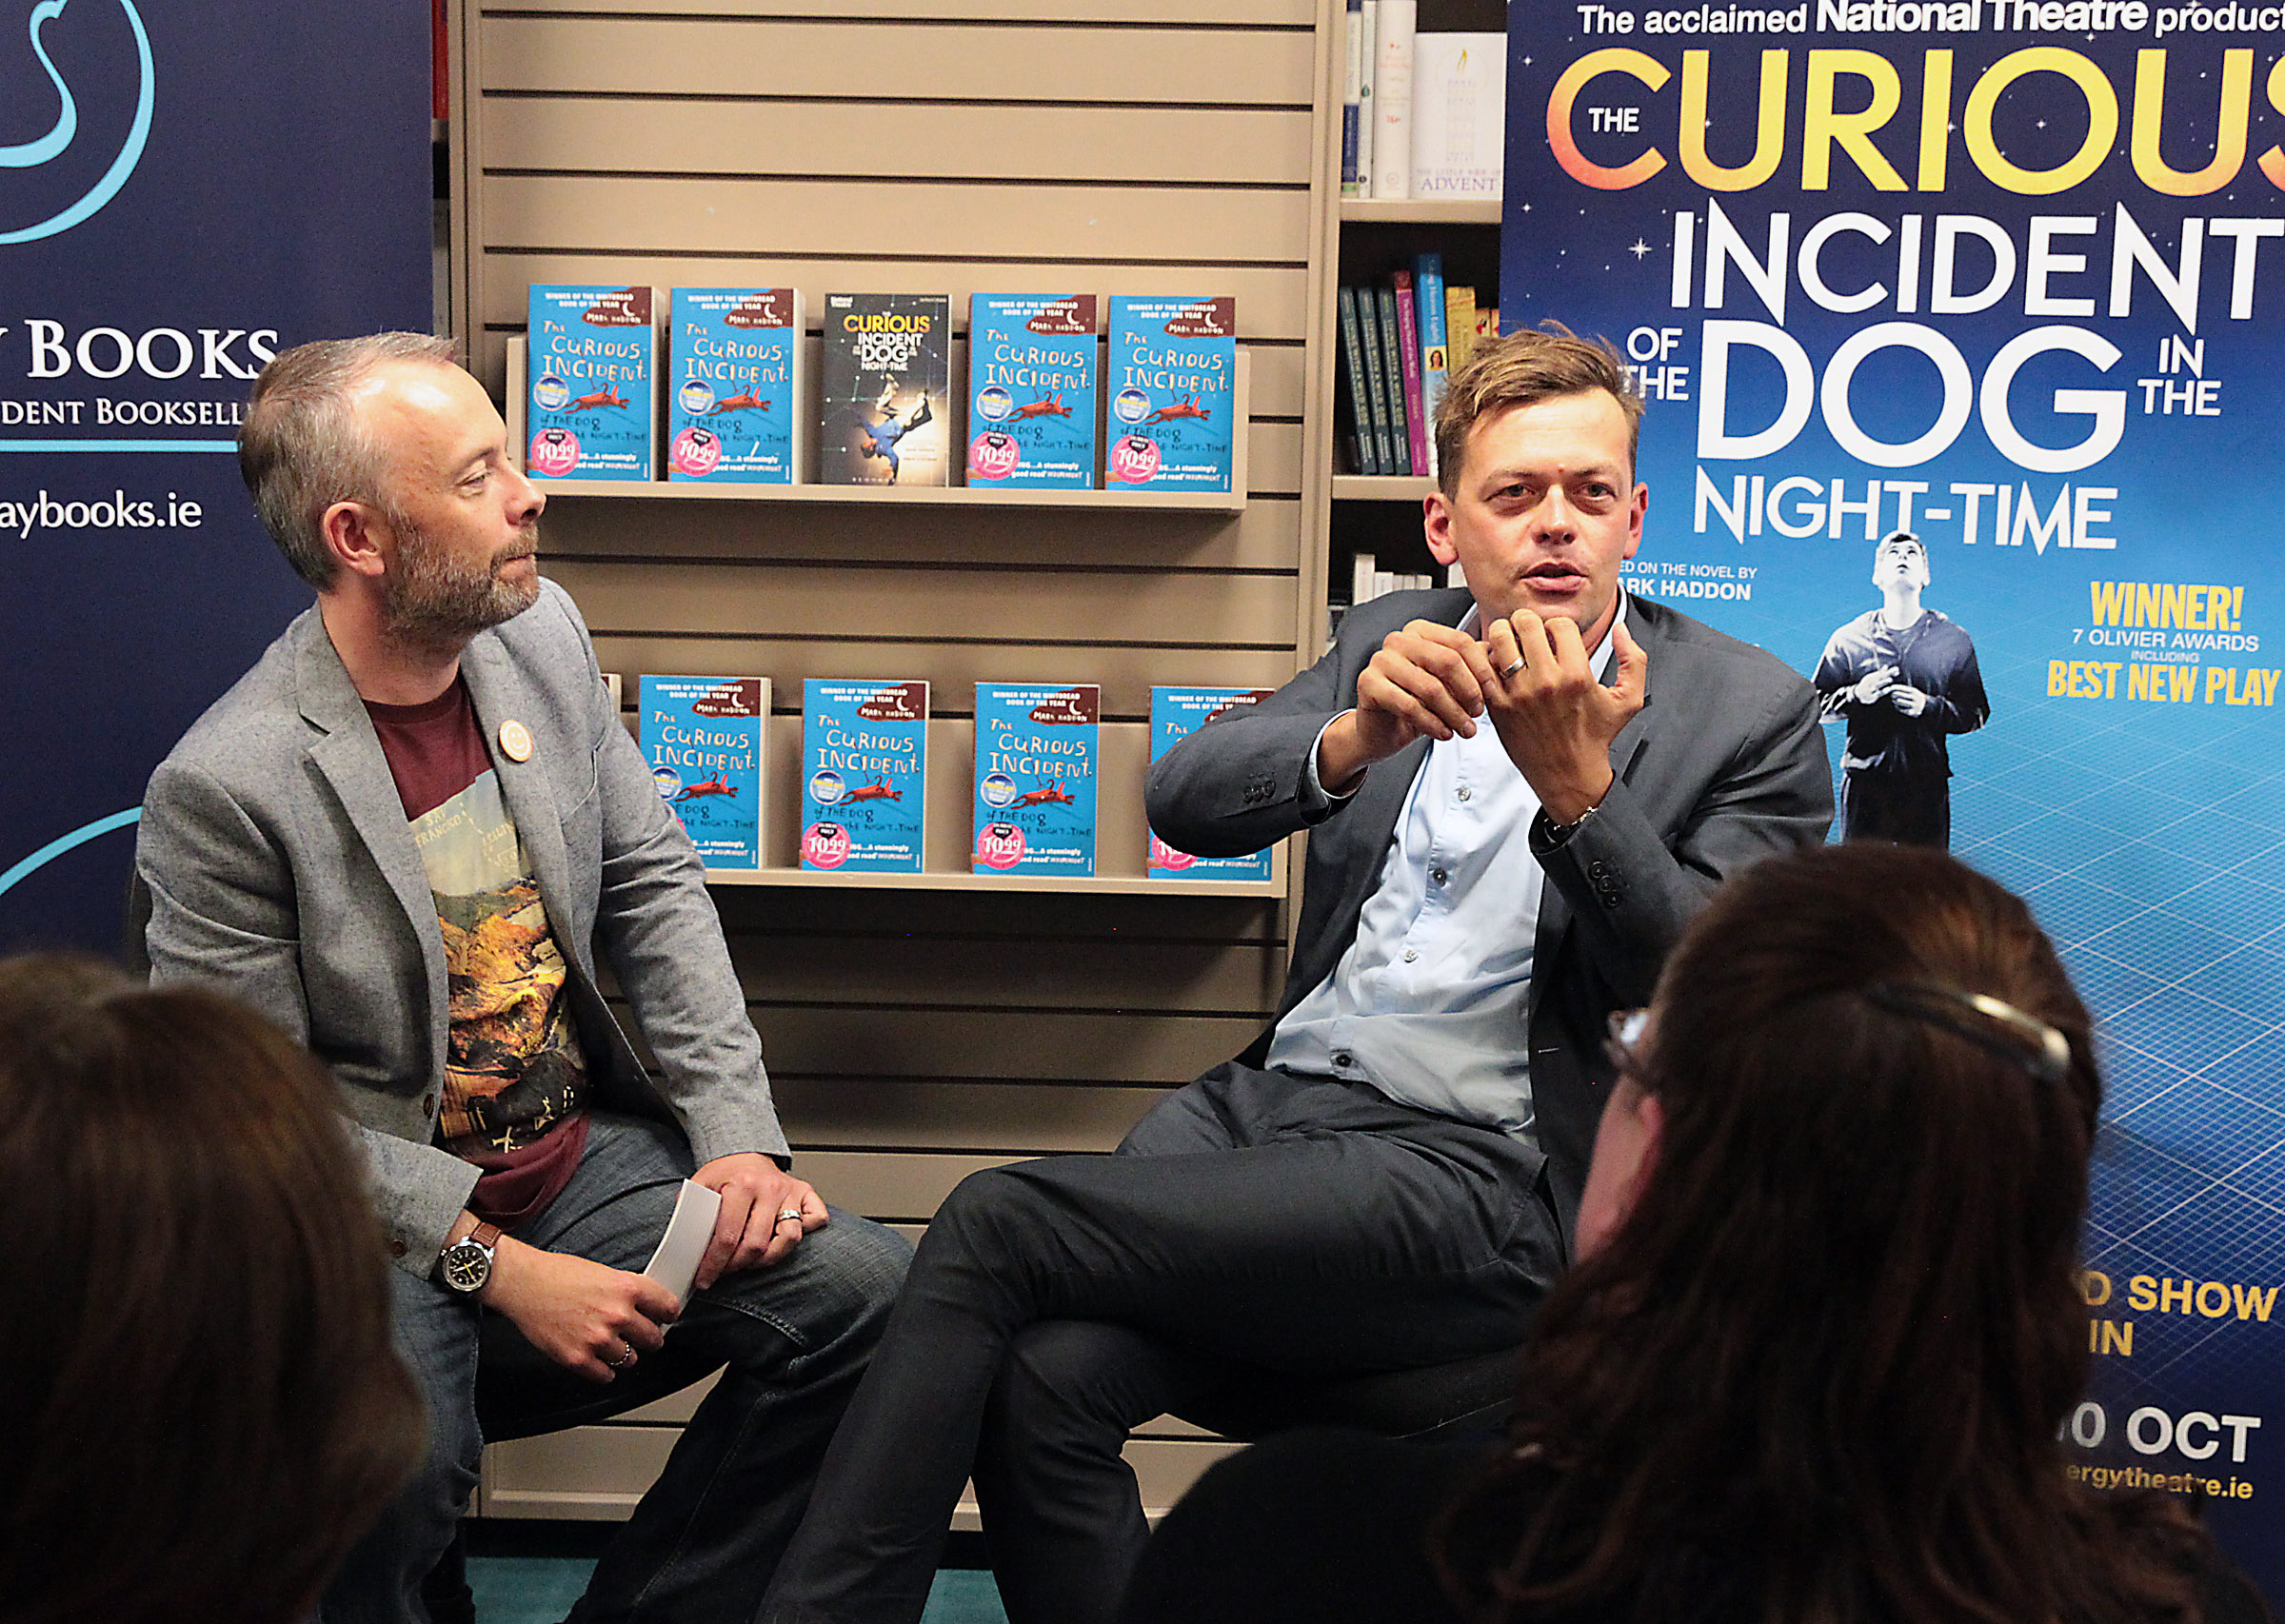 Dubray Books and the Bord Gáis Energy Theatre, in association with The National Theatre of Great Britain, held a very special event with Rick O'Shea and playwright Simon Stephens (right). The Rick O'Shea Book Club event celebrated the highly anticipated arrival of the award winning play, The Curious Incident of the Dog in the Night-Time, which comes to the Bord Gáis Energy Theatre from 6-10 October as part of the Dublin Theatre Festival. Picture:Brian McEvoy No Repro fee for one use